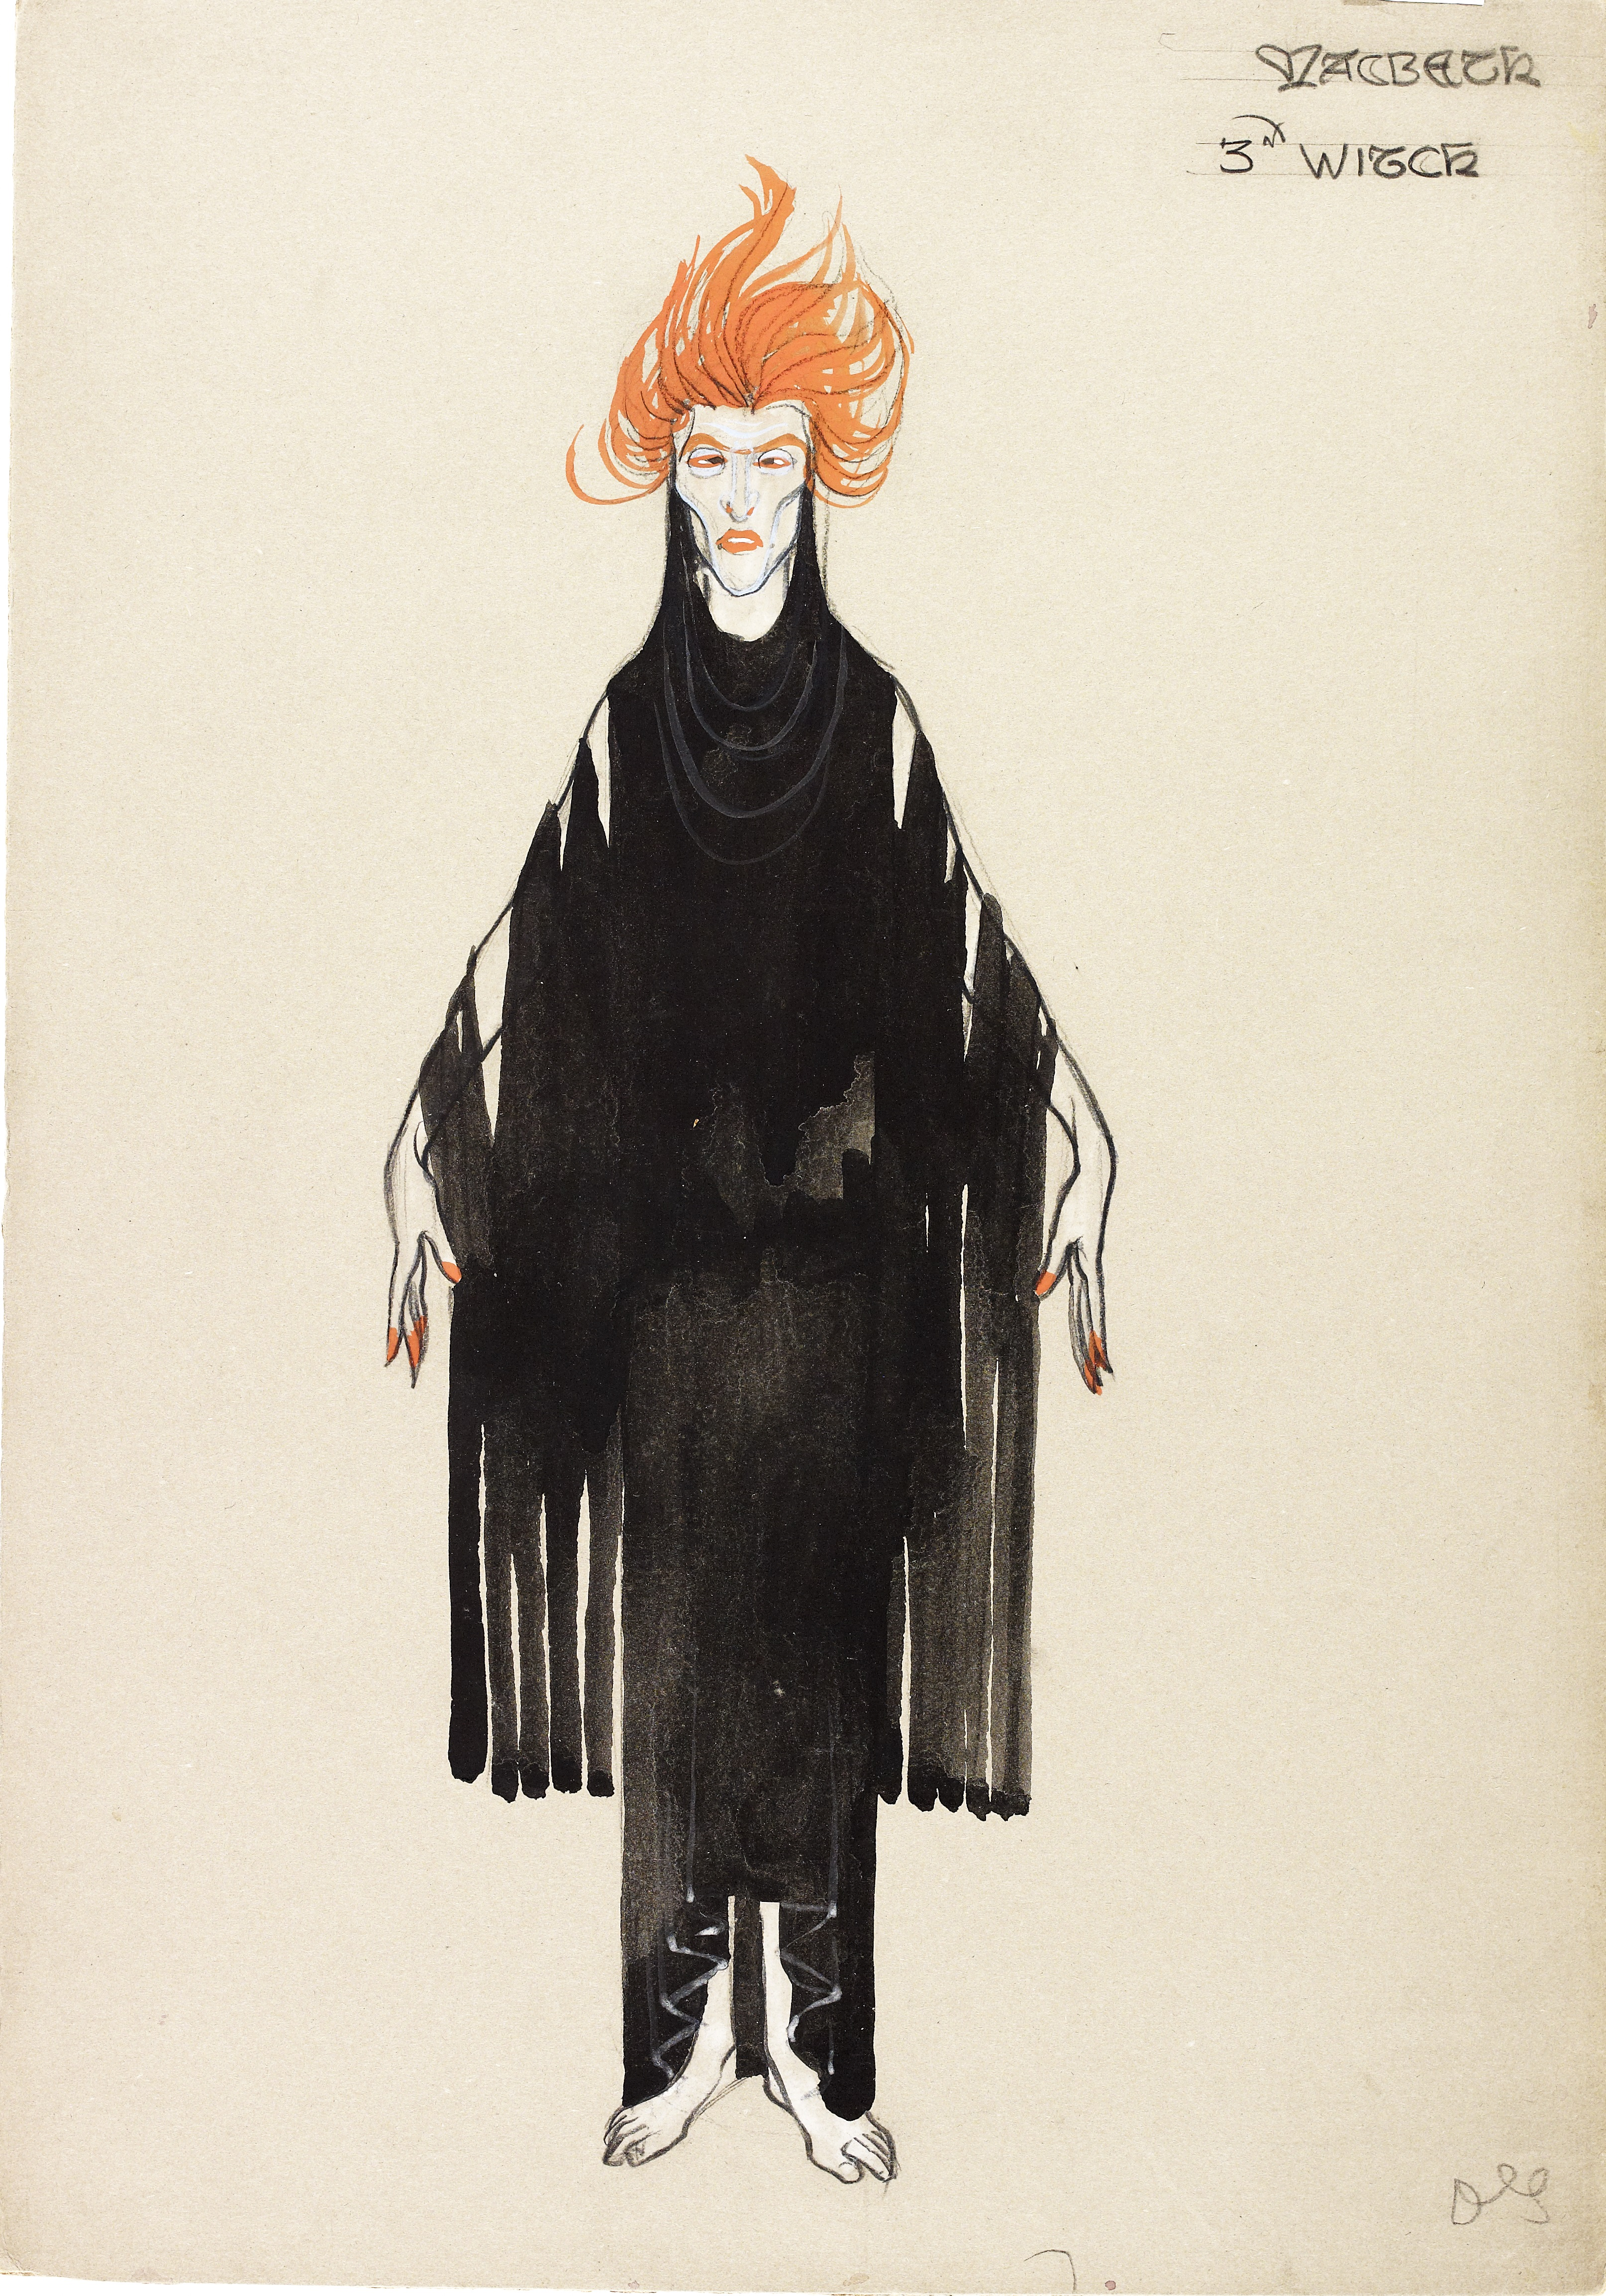 NMC096/R Costume design for the 3rd witch in Macbeth, but Dorothy Carleton Smyth, 1933